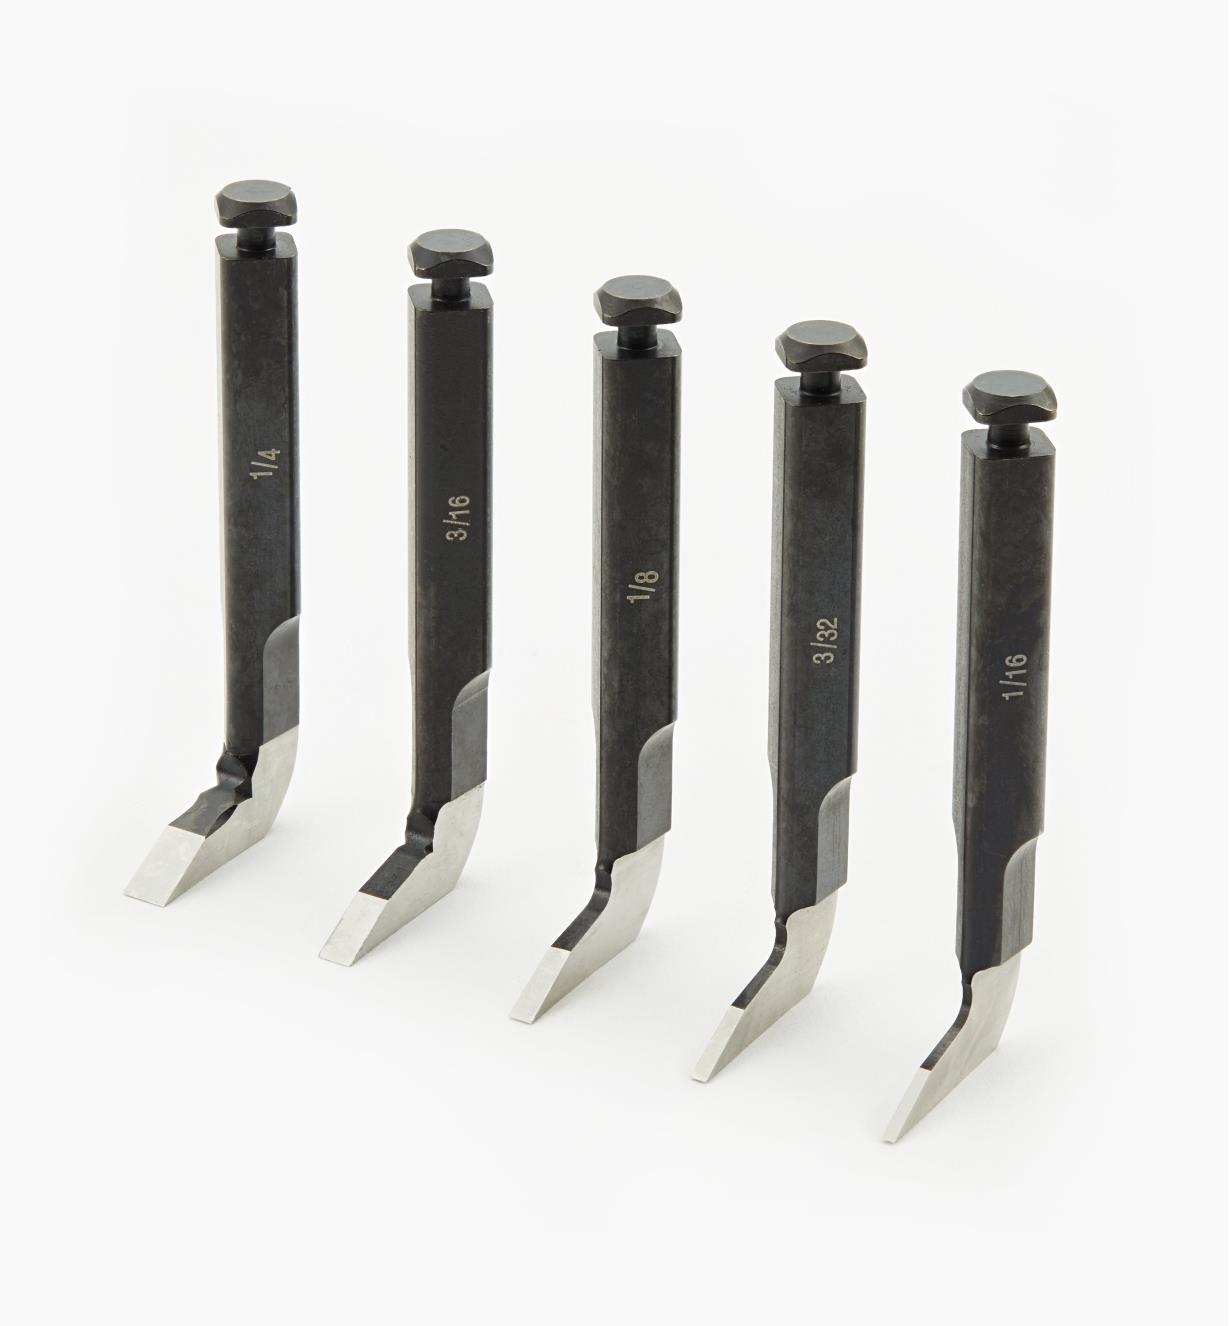 05P3842 - Set of 5 Imperial Blades